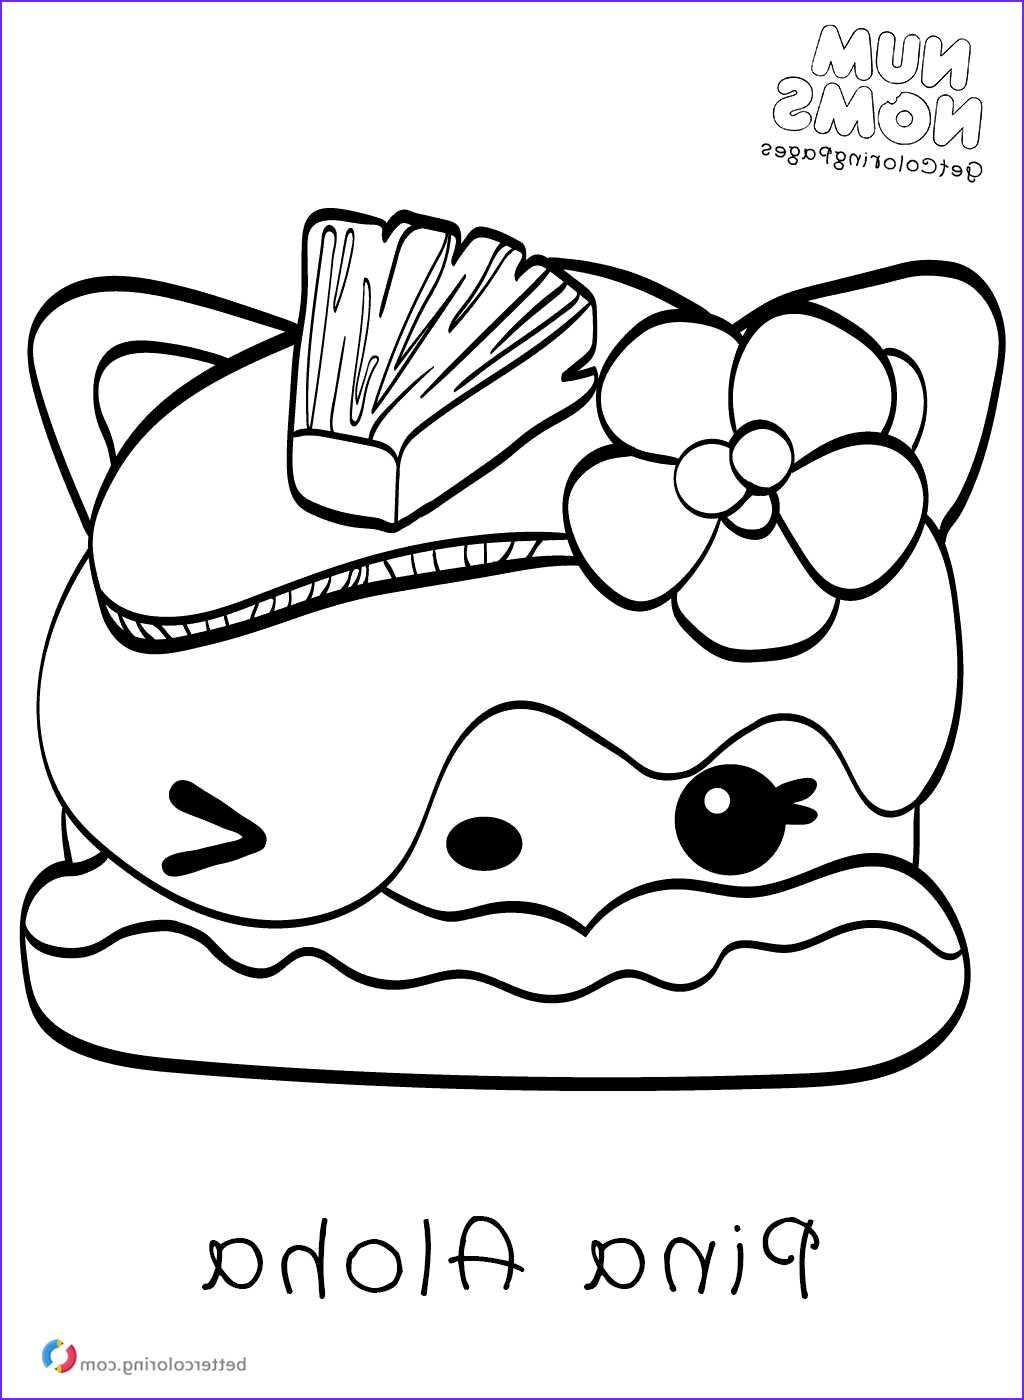 Nom Nom Coloring Page Best Of Image Num Noms Printable Coloring Pages